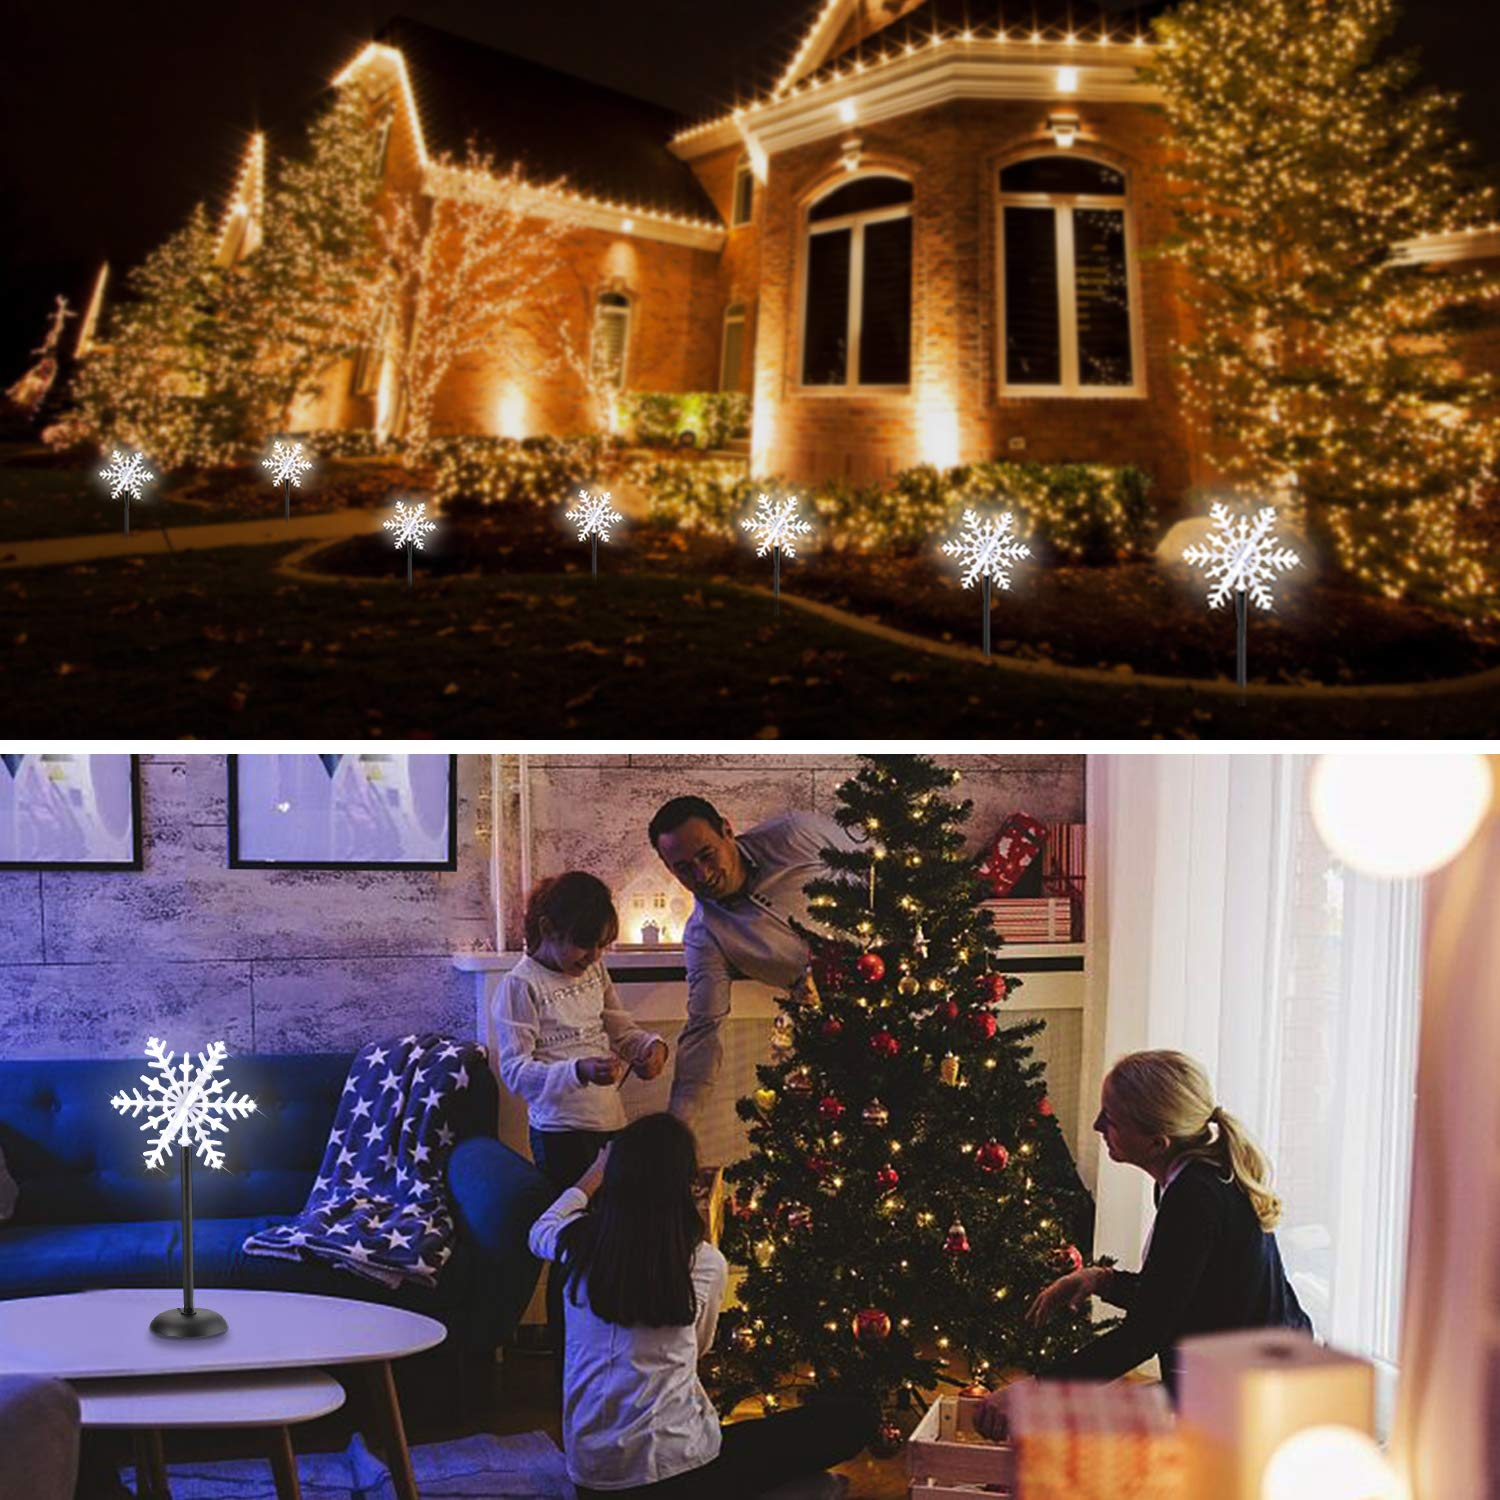 Christmas Star LED Garden Lights Snowflake Flash Lighting Stake Lights Outdoor Decoration Waterproof for Landscape Garden Lawn Patio Halloween Thanksgiving Christmas Party 2 Pcs